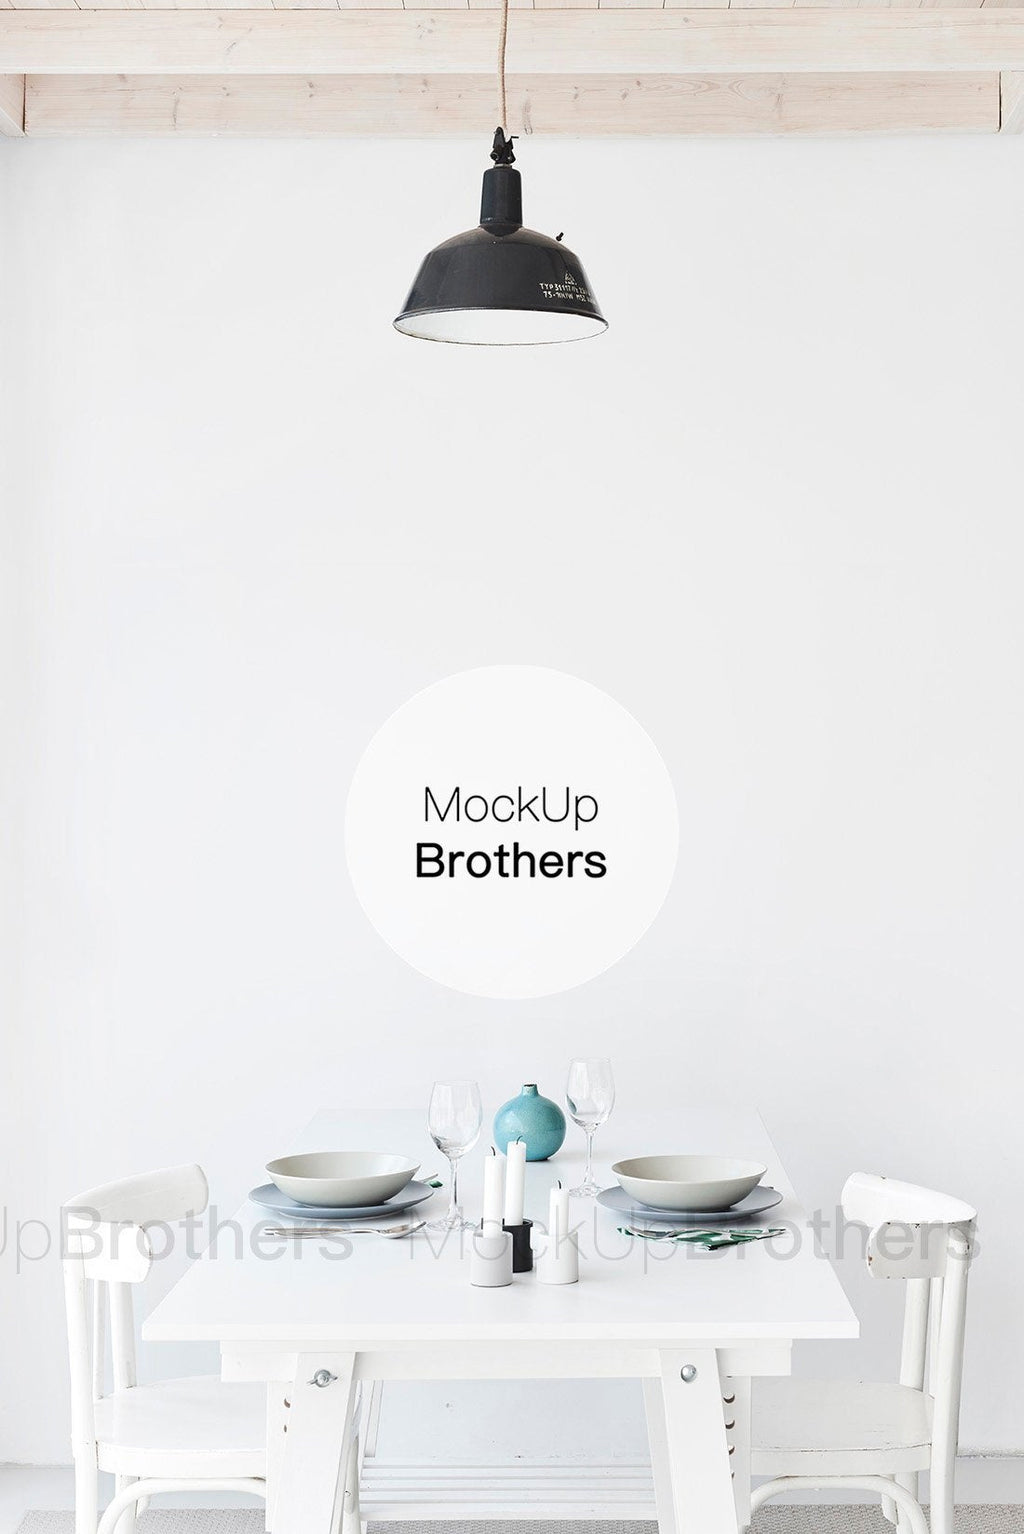 Dining room mockup by MockupBrothers